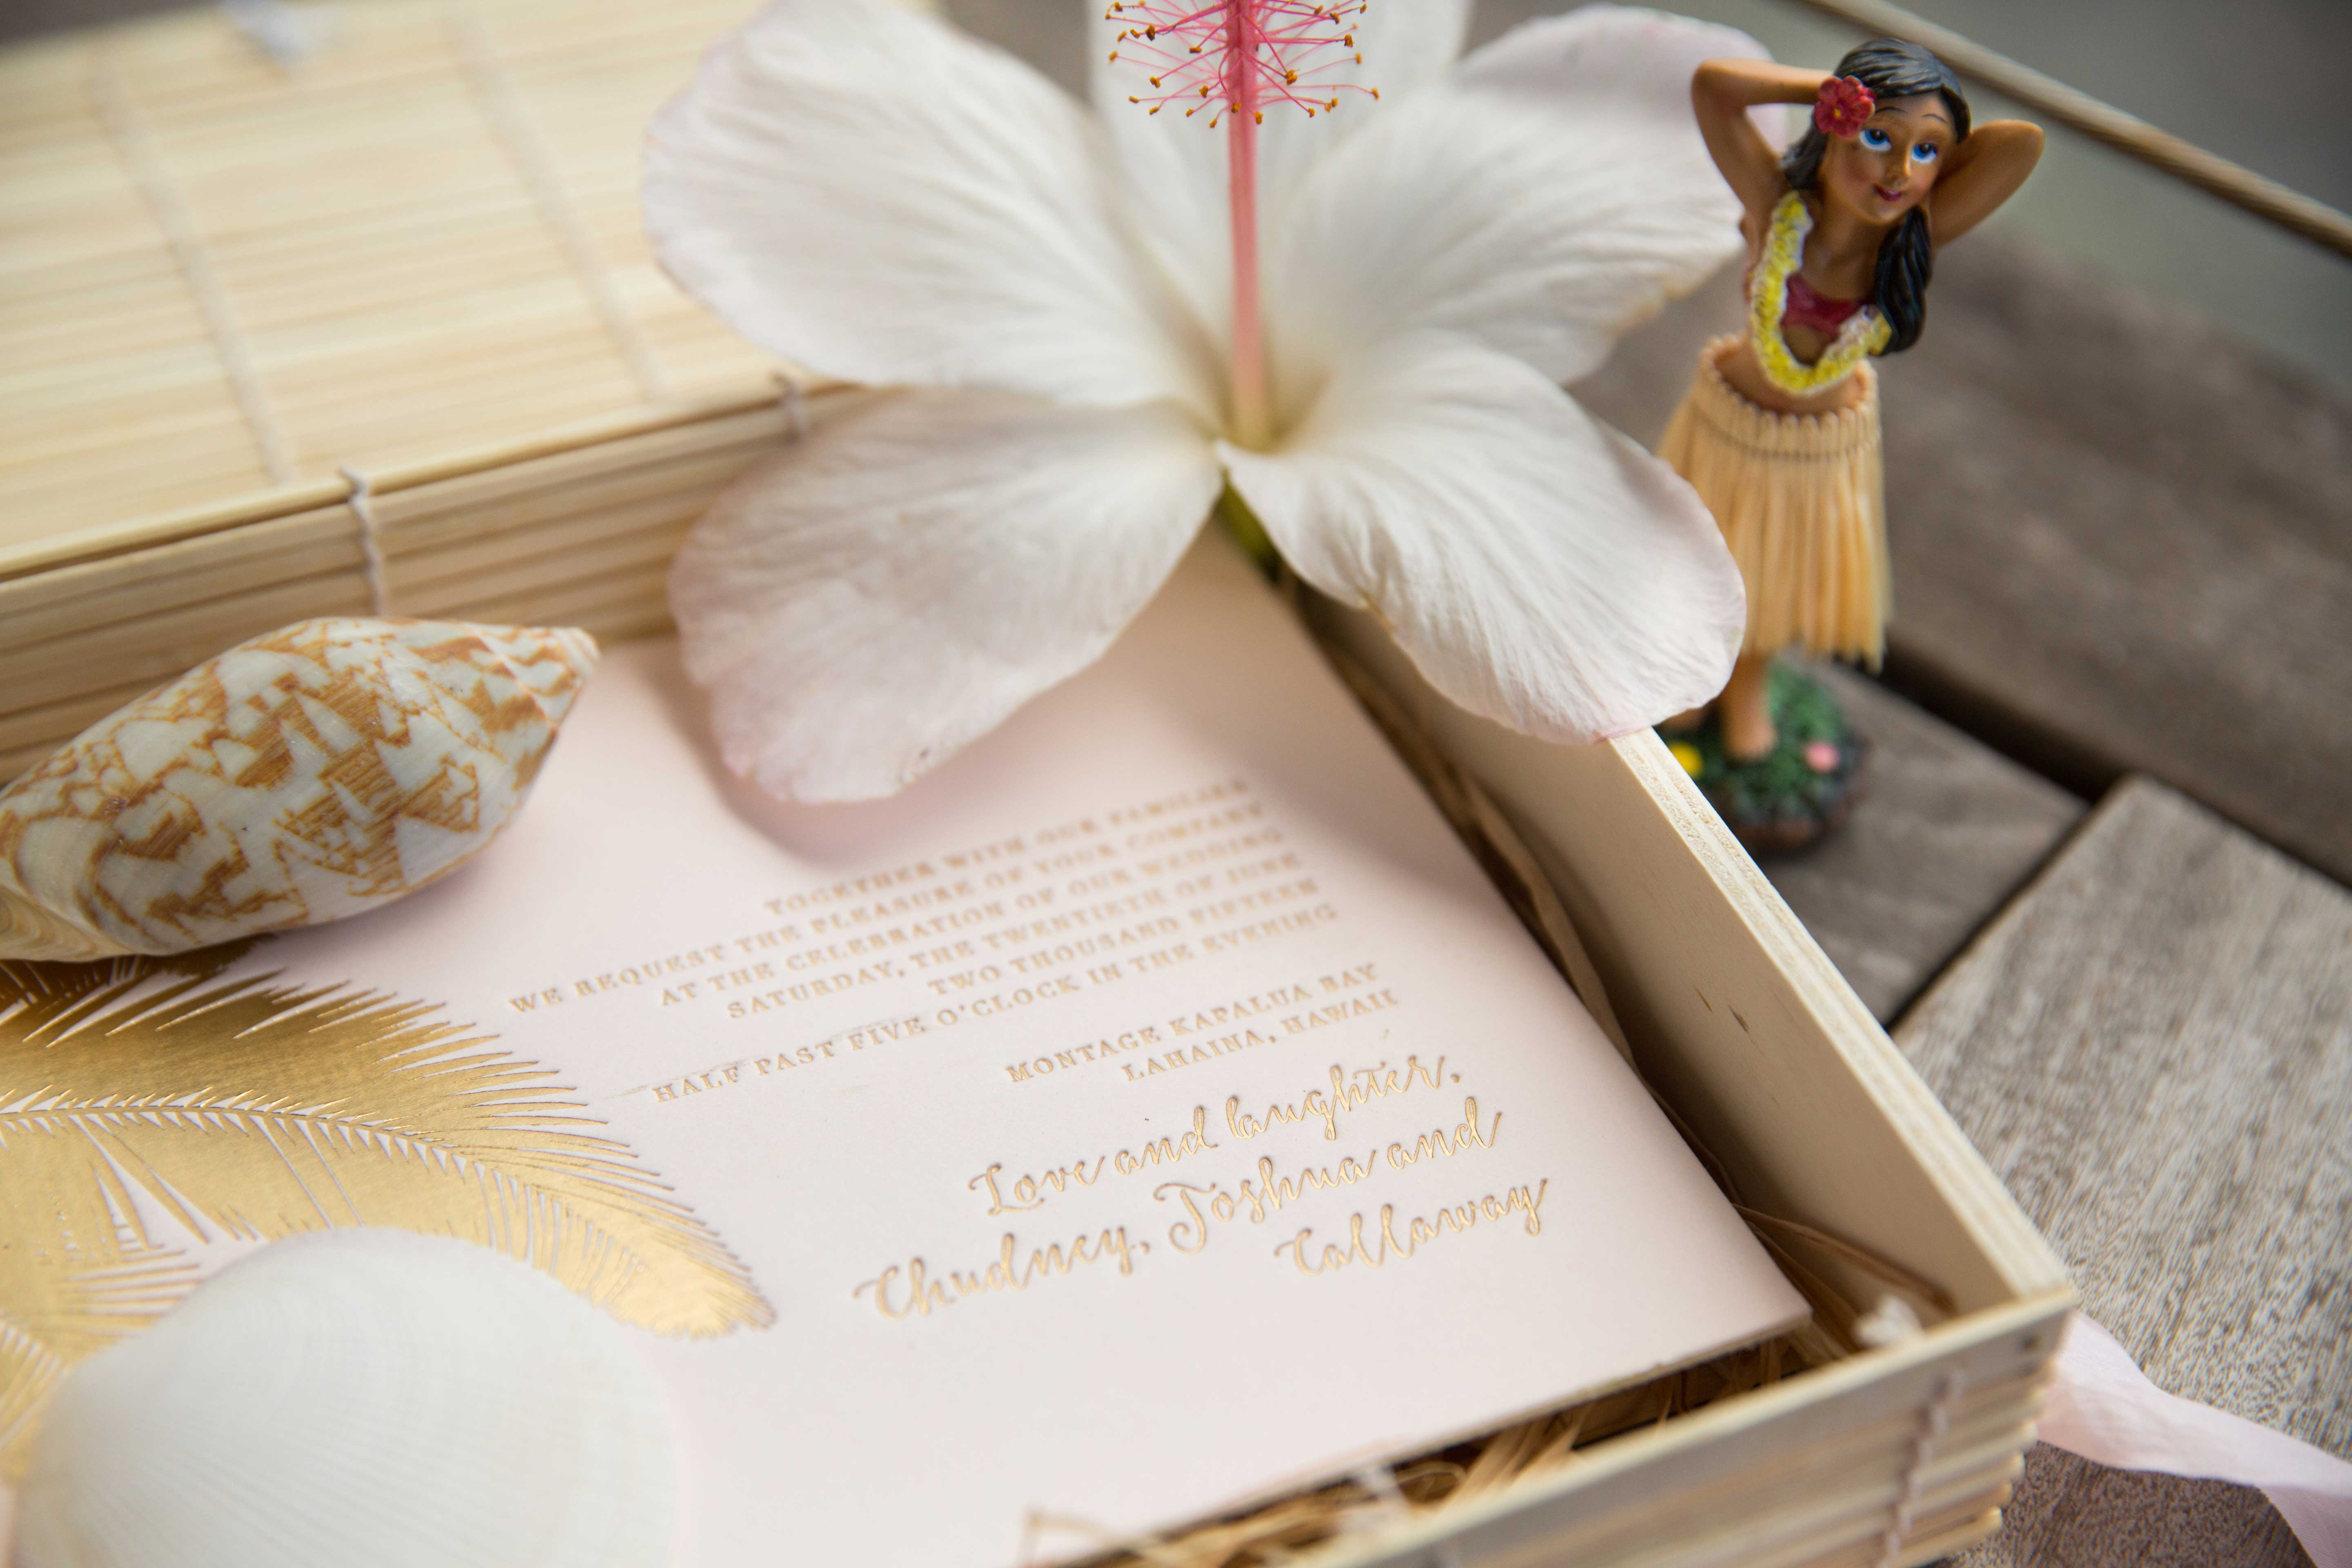 Diana Ross daughter wedding invitation